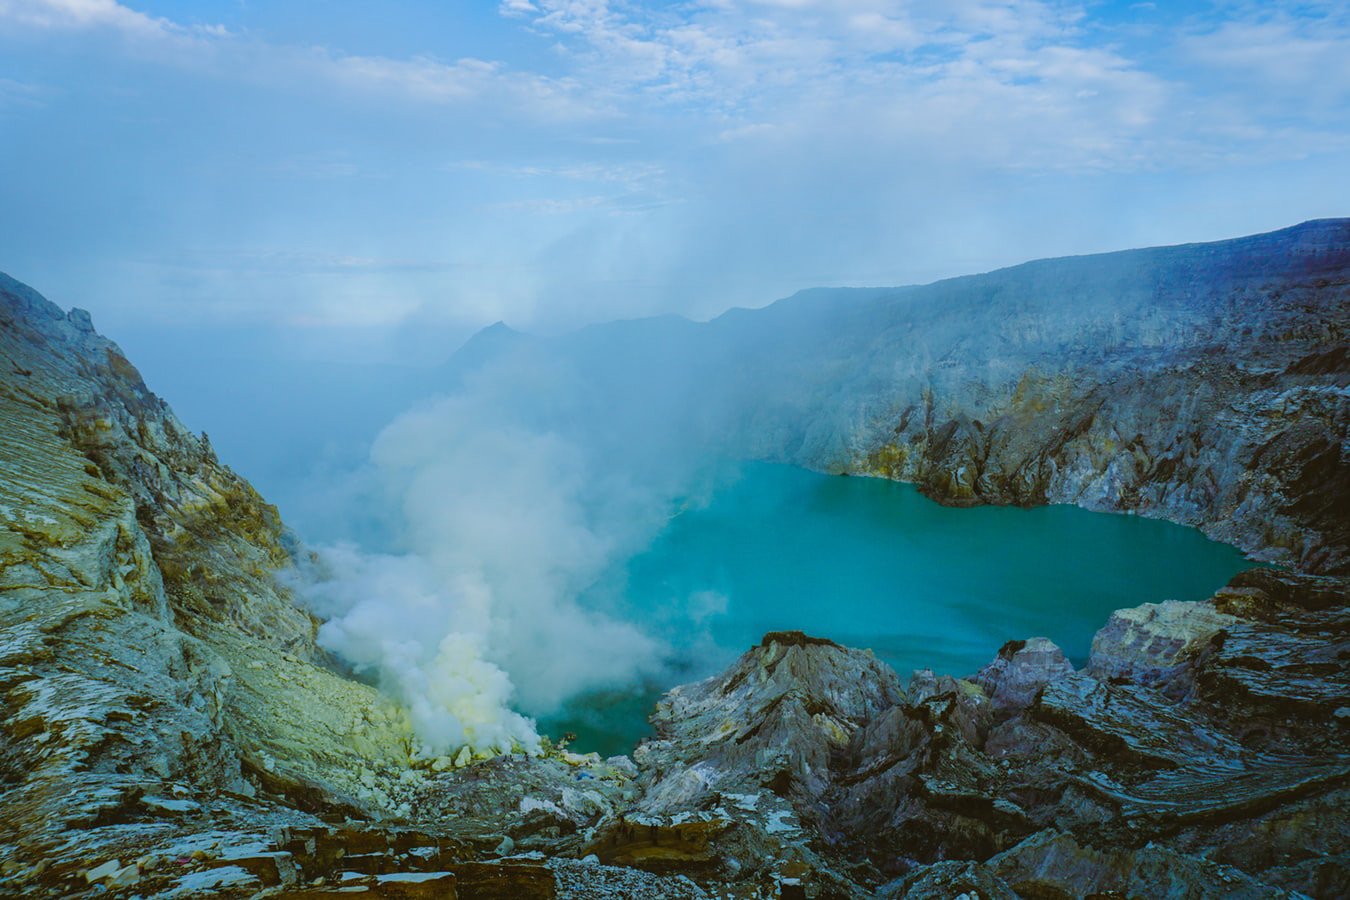 Il vulcano Ijen in Indonesia. Itinerario in Indonesia: da Java alle Gili.